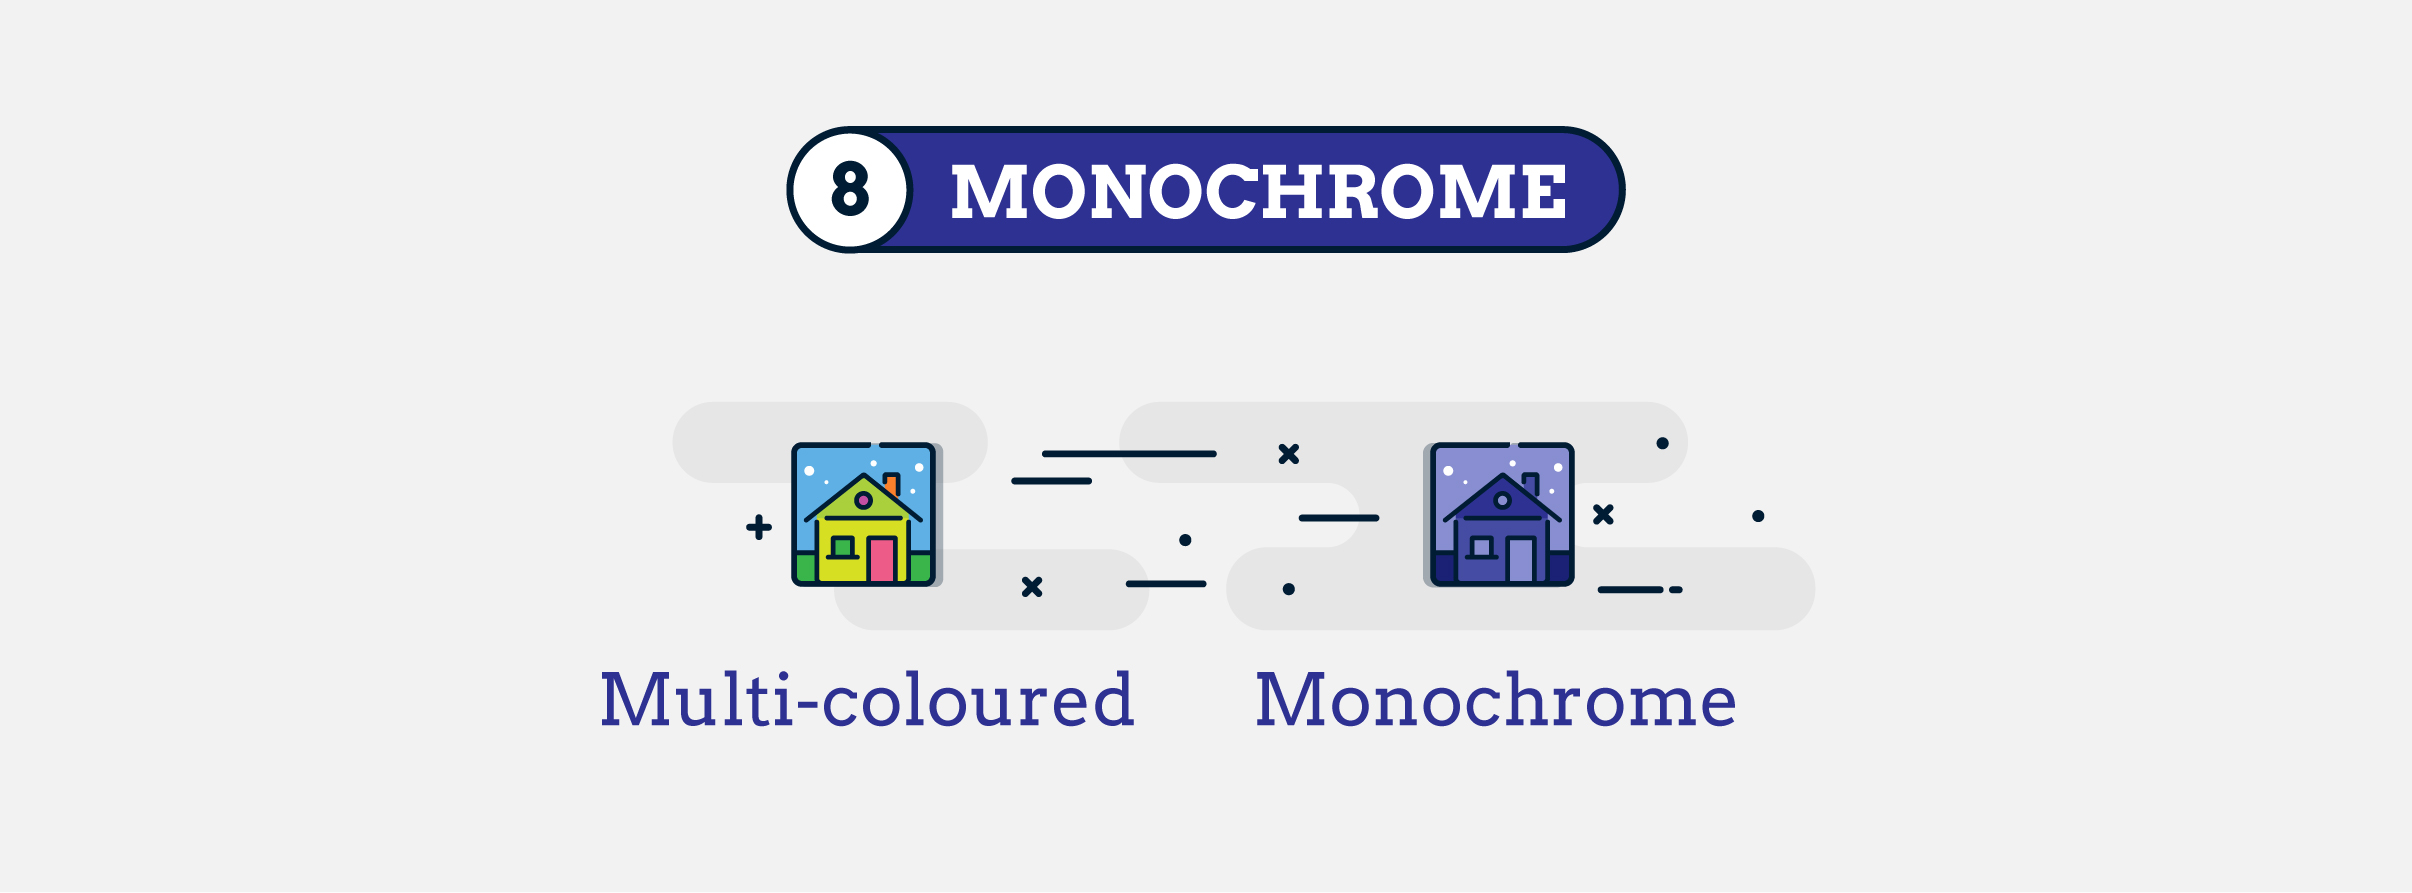 Design terms - monochrome